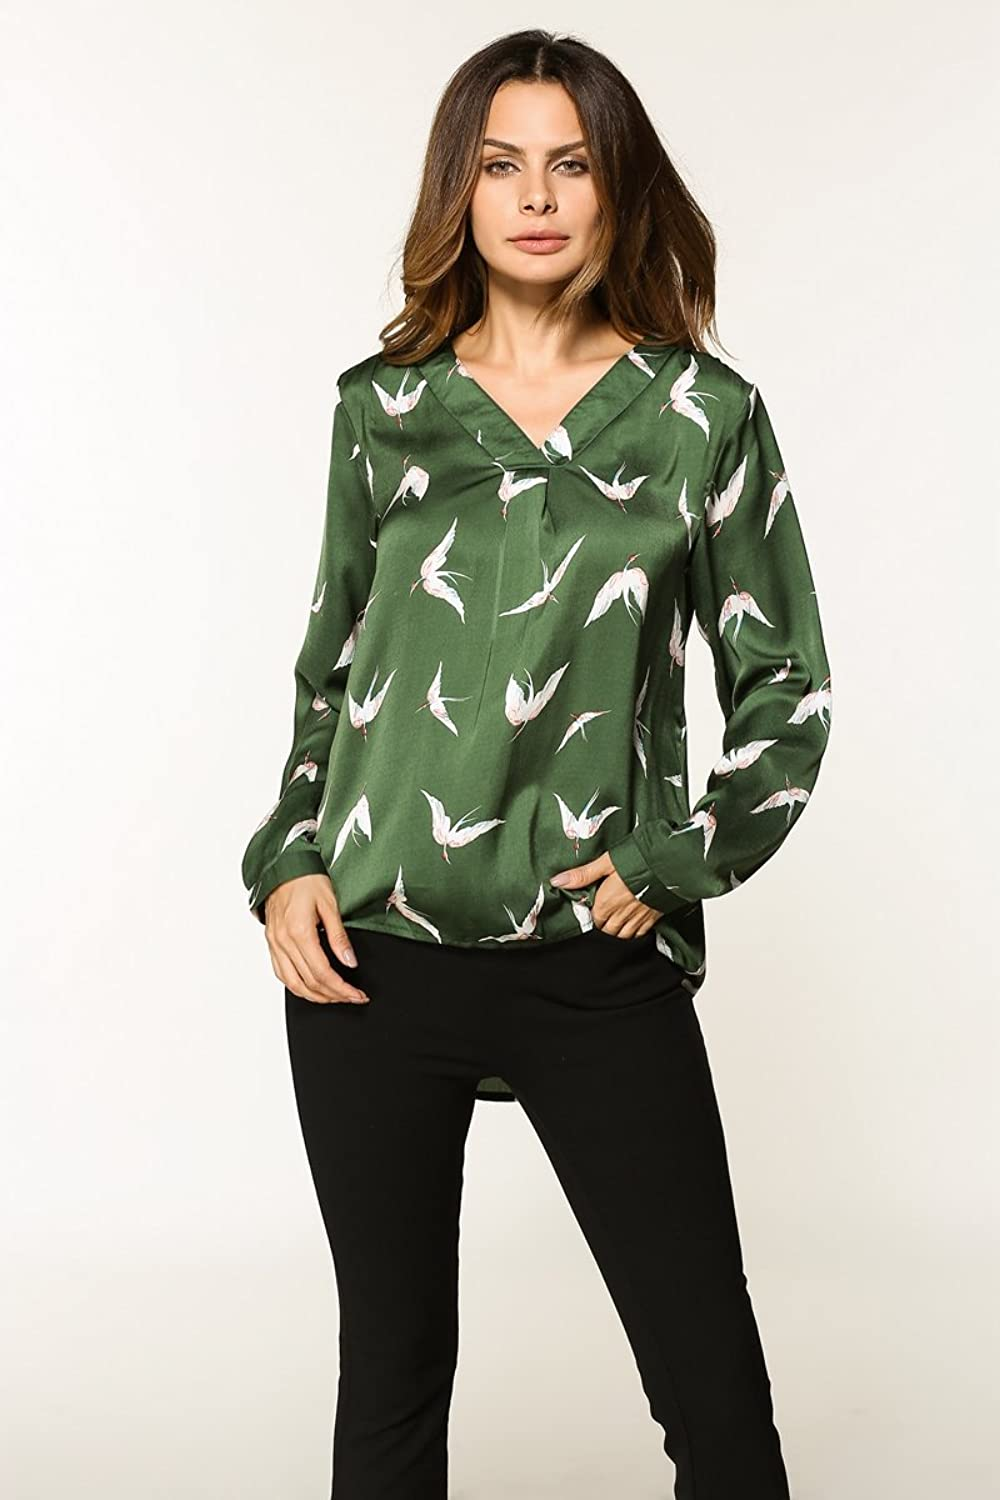 DHWMFemale Spring temperament blouse VNeck Long Sleeve Shirts Bird